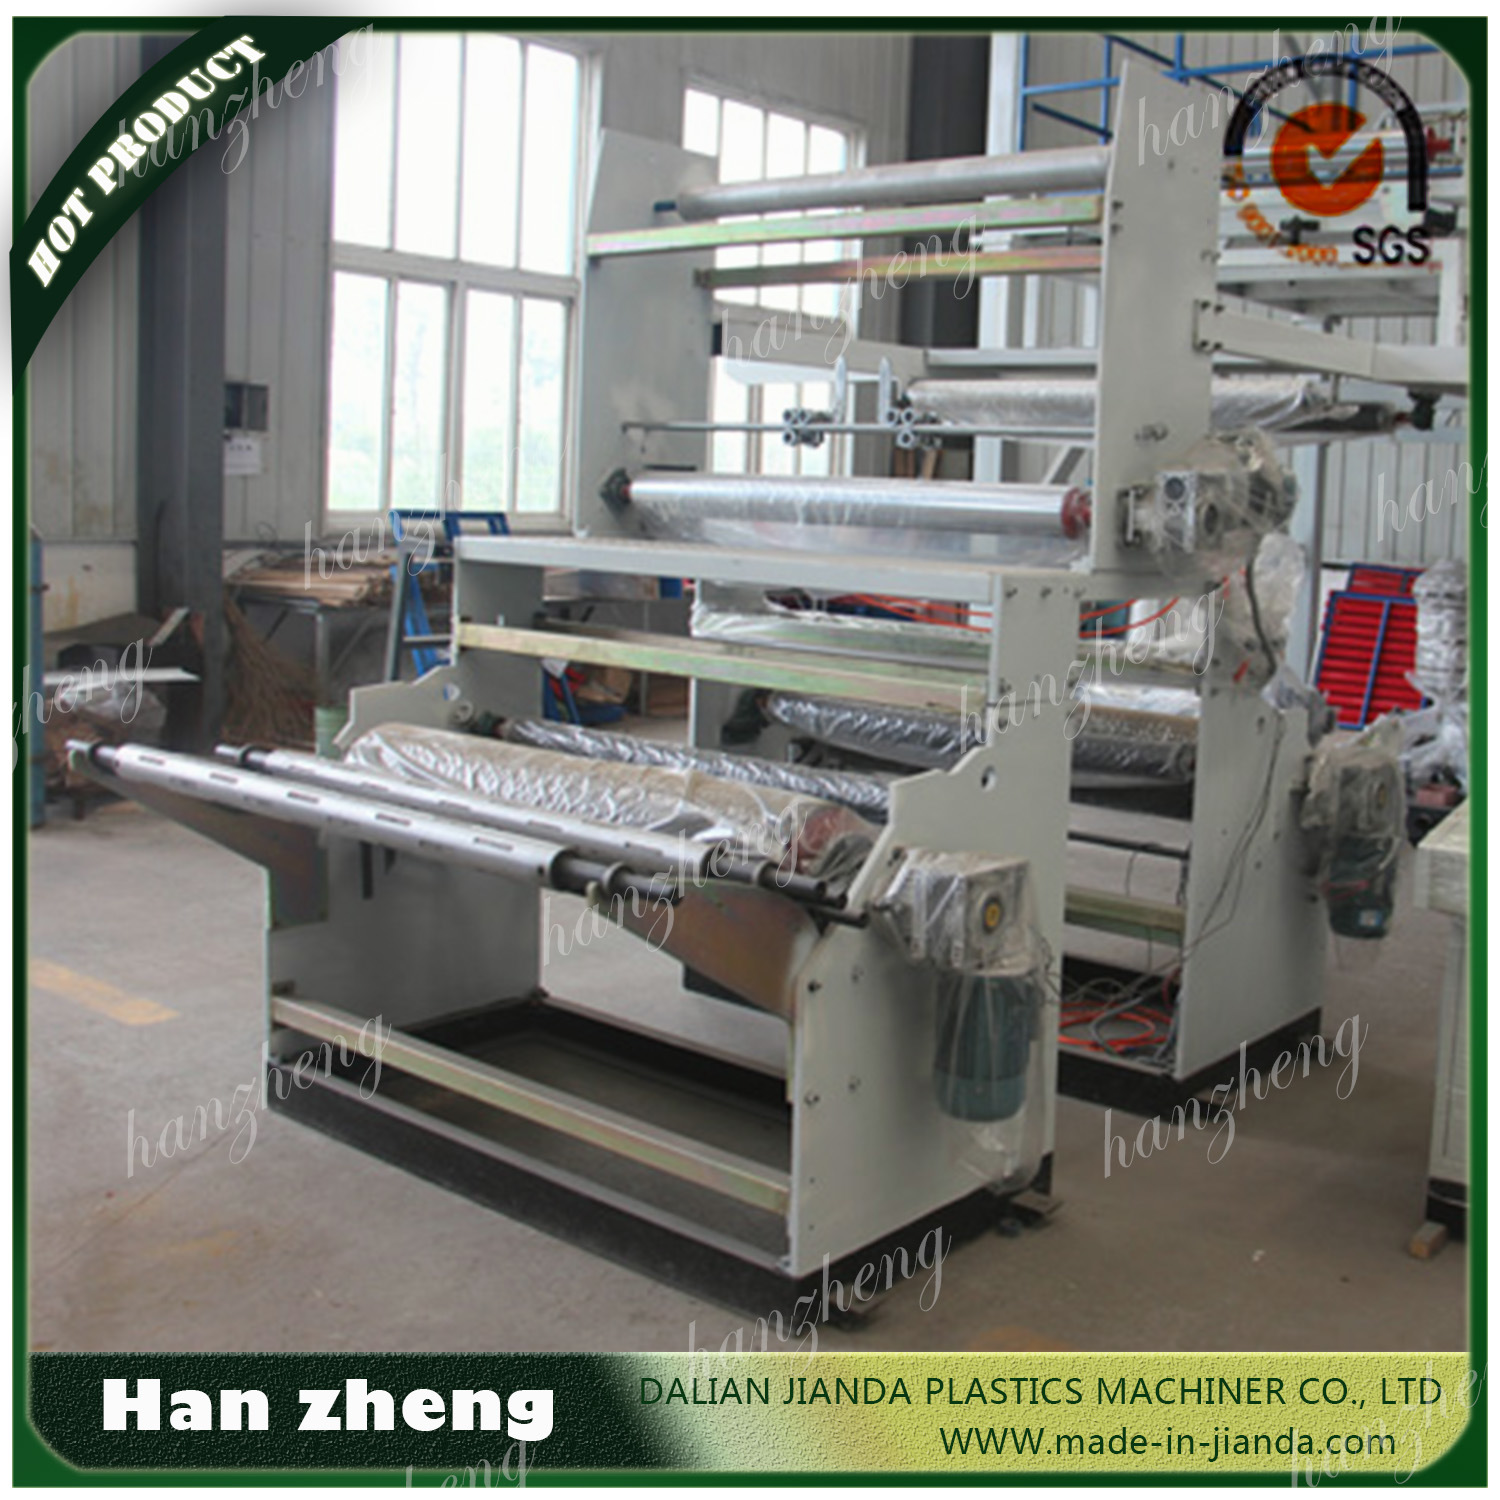 Multi-Layer Co-Extrusion Blown Film Machine with Oscillating Haul-off Rotation 55-2-65-1-1600